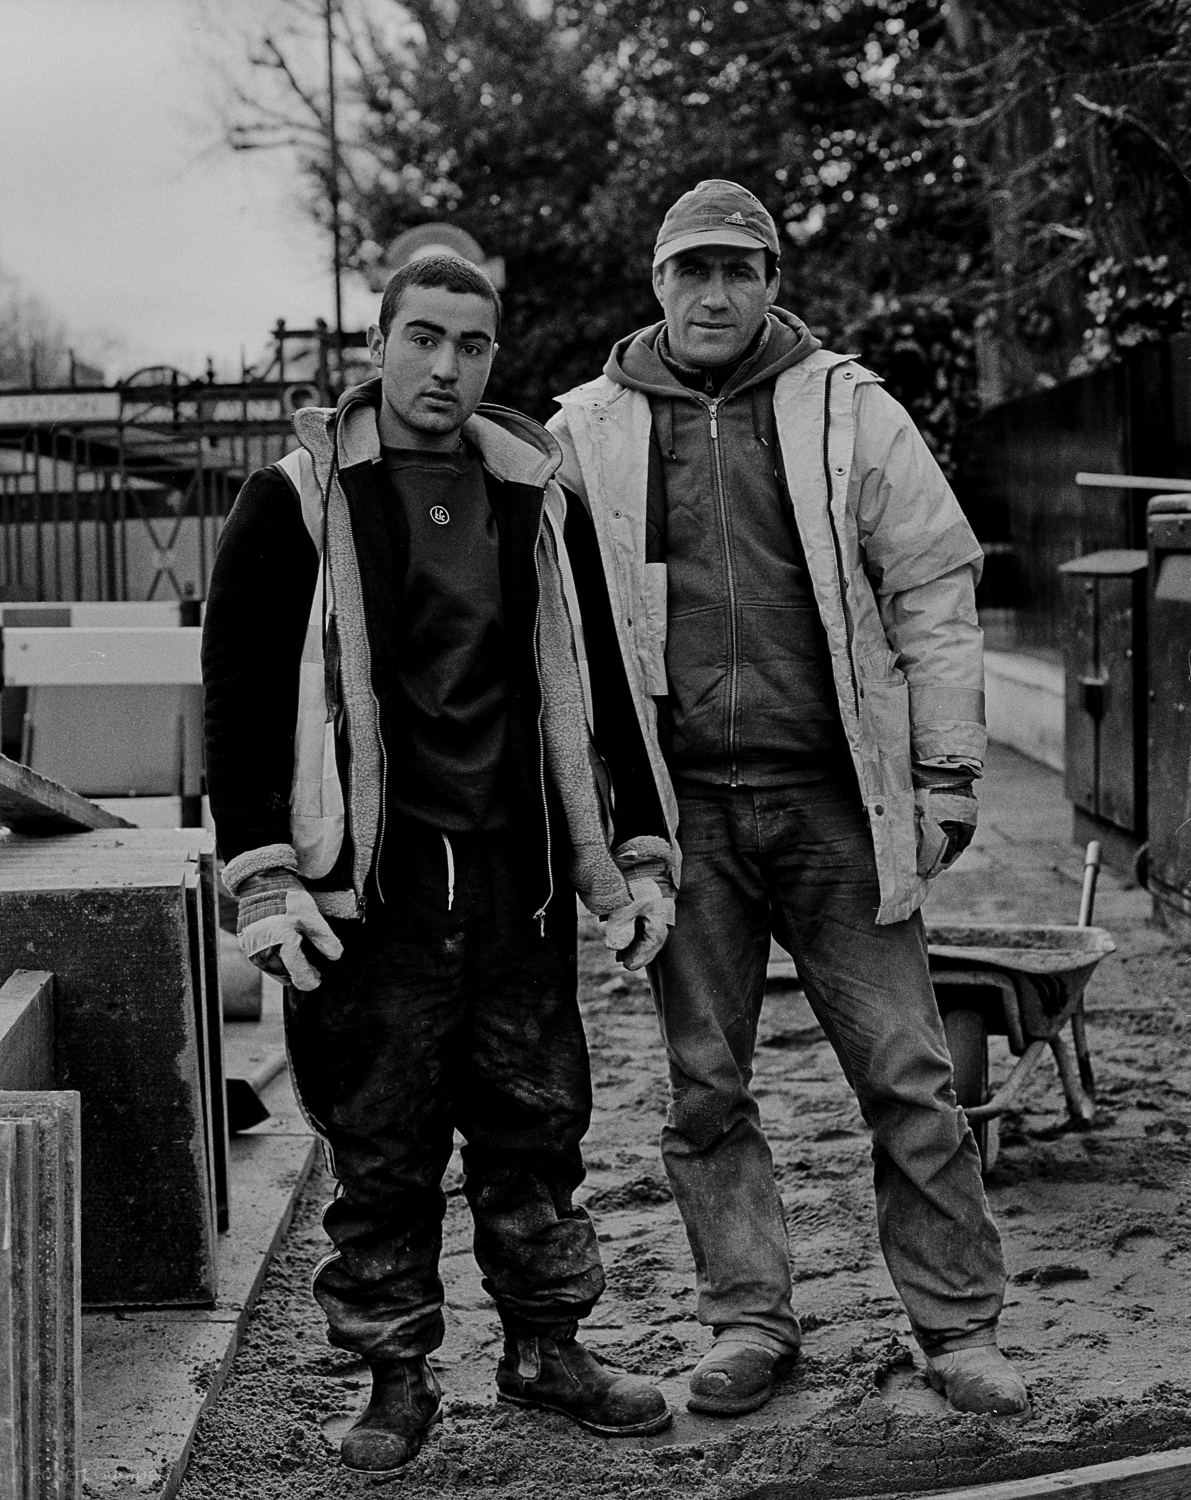 2005: Street maintance workers from eastern Europe. London, England